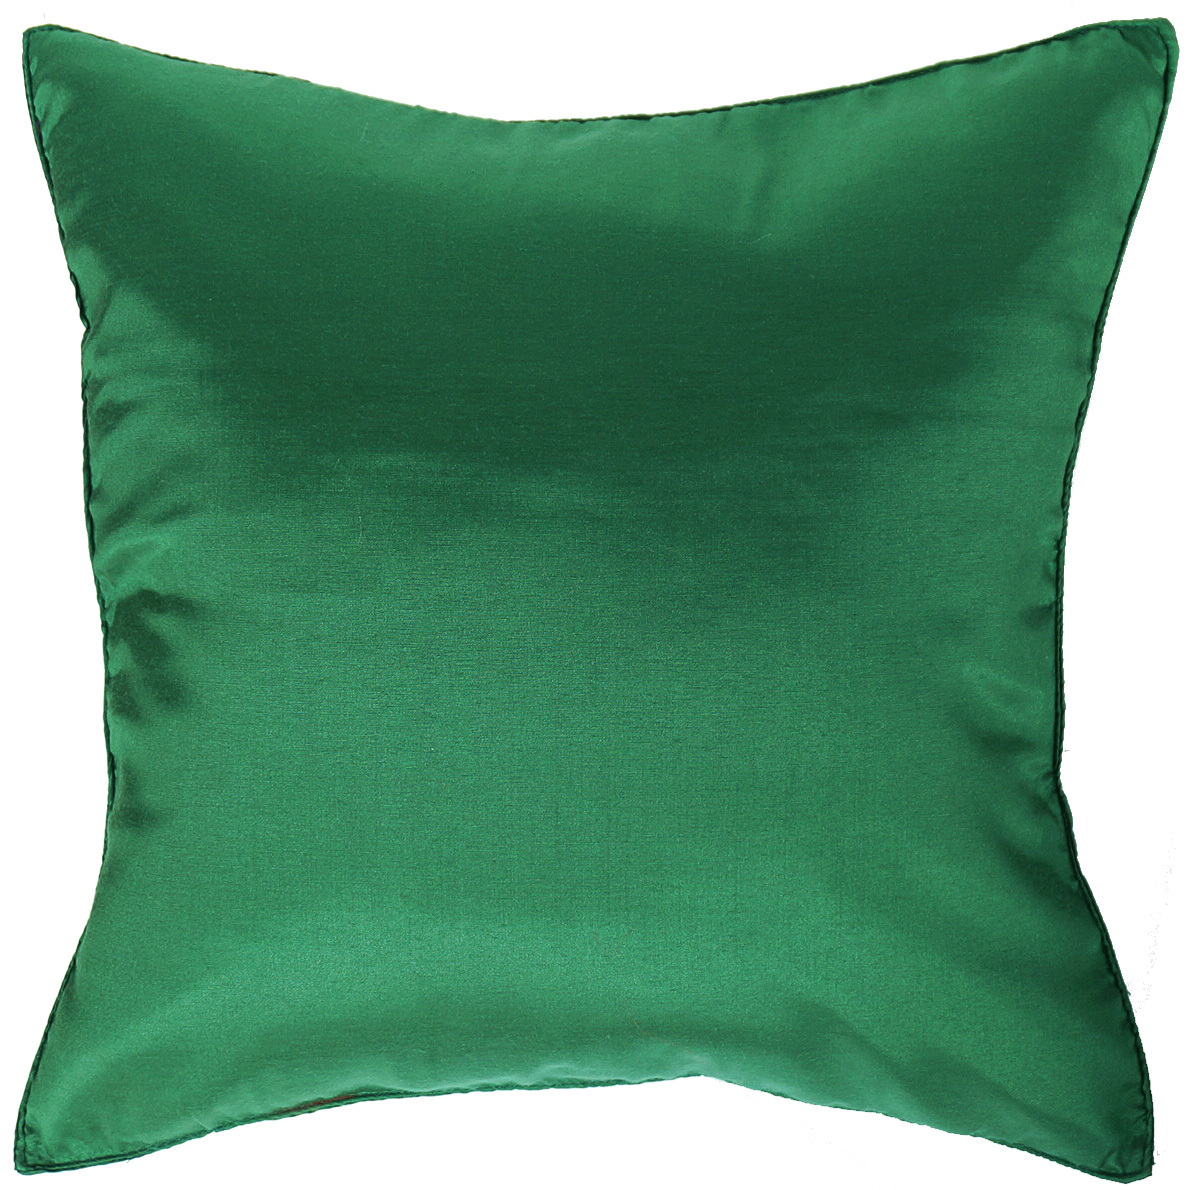 Decorative Pillow Wraps : 1x SILK LARGE DECORATIVE THROW PILLOW COVER FOR COUCH SOFA BED SOLID COLOR 20x20 - Pillows